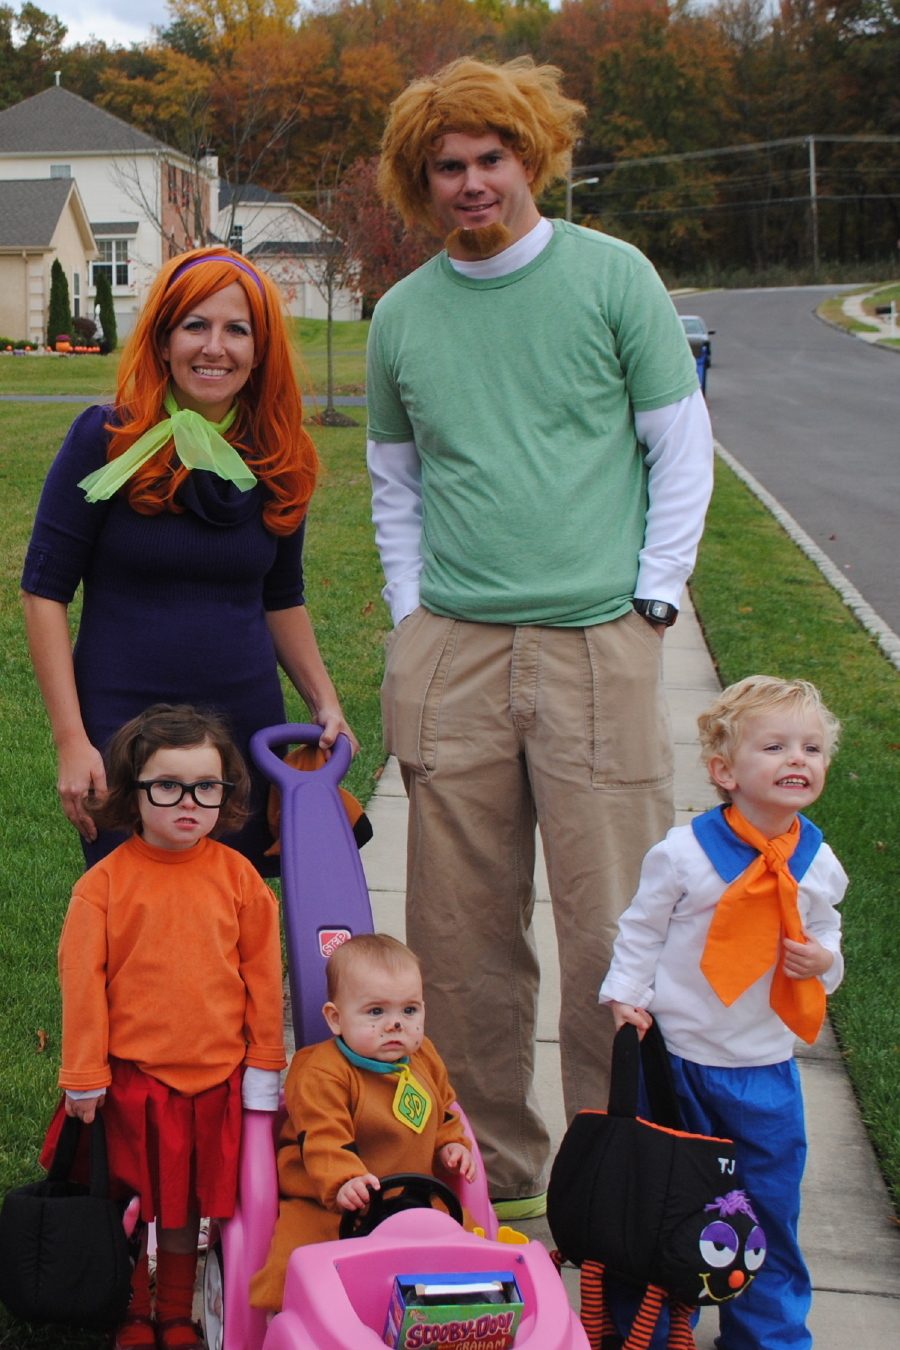 Halloween Costumes Family Of 4.Epic Family Halloween Costumes The Incredibles Kelly Rowland